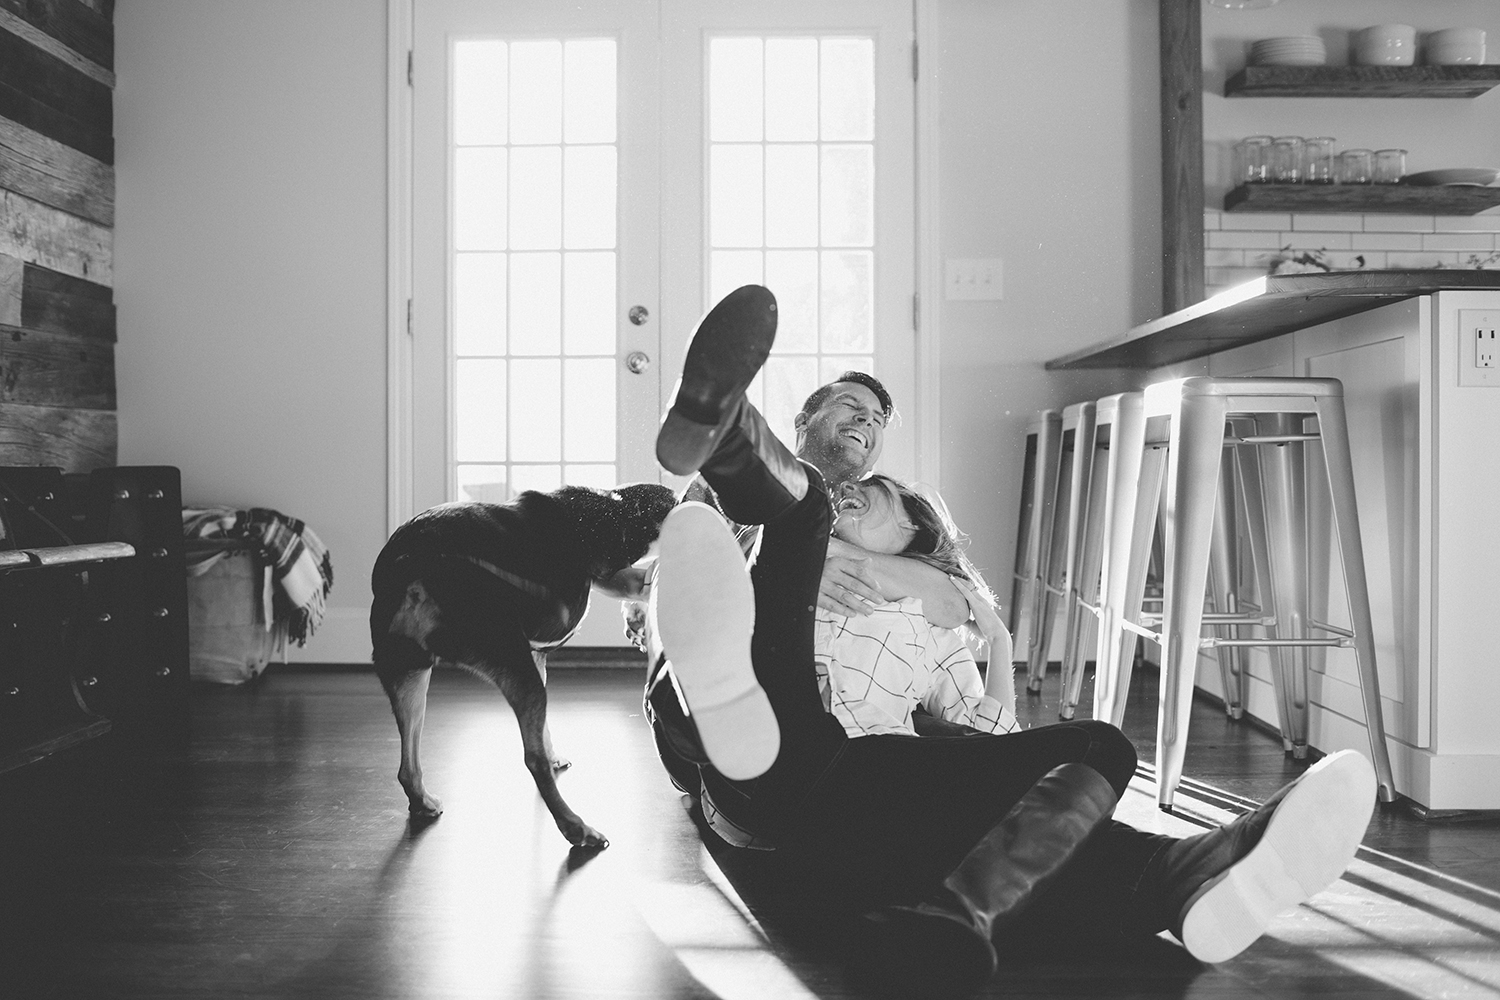 RobMegEngagement - Alicia White Photography-267.jpg